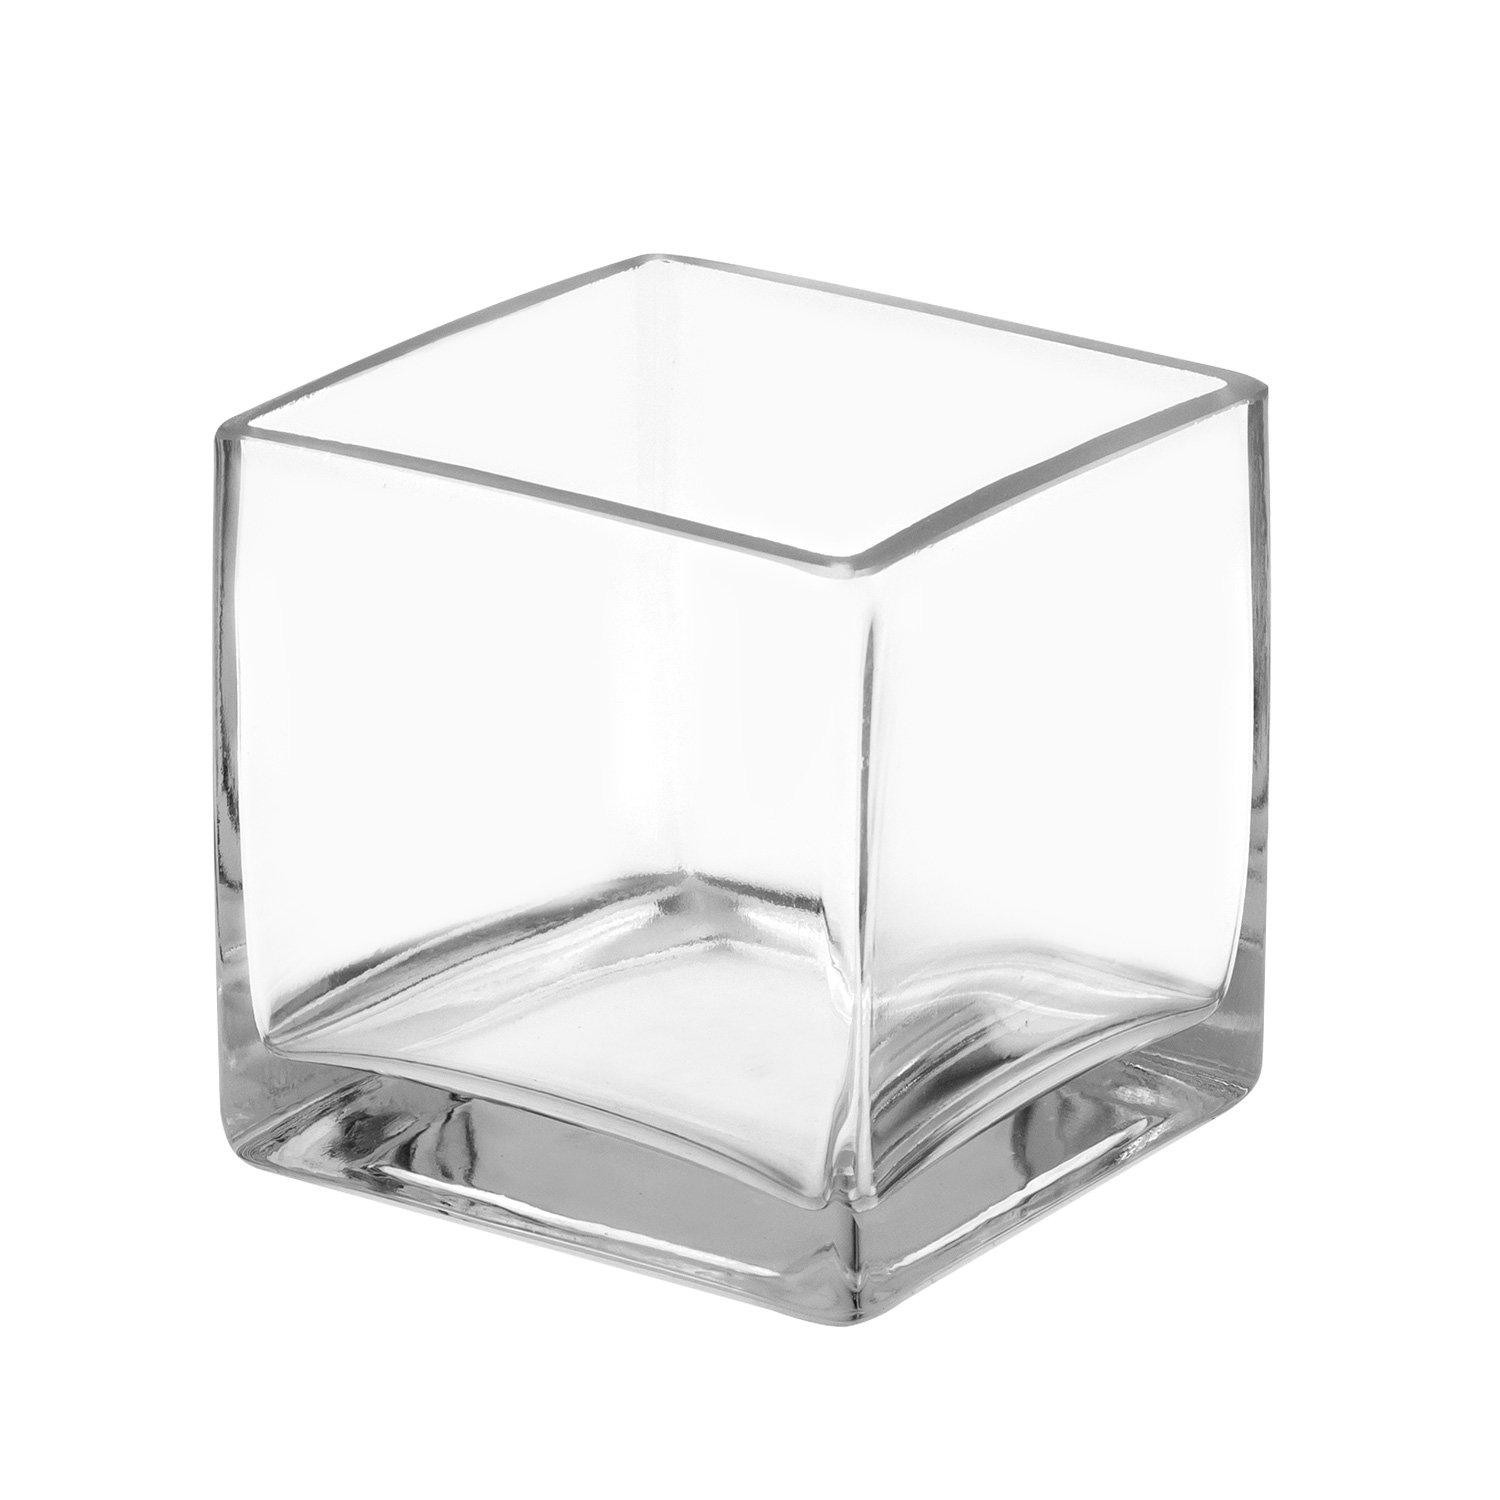 Royal Imports Flower Glass Vase Decorative Centerpiece Home Wedding Clear Cube Shape, 4